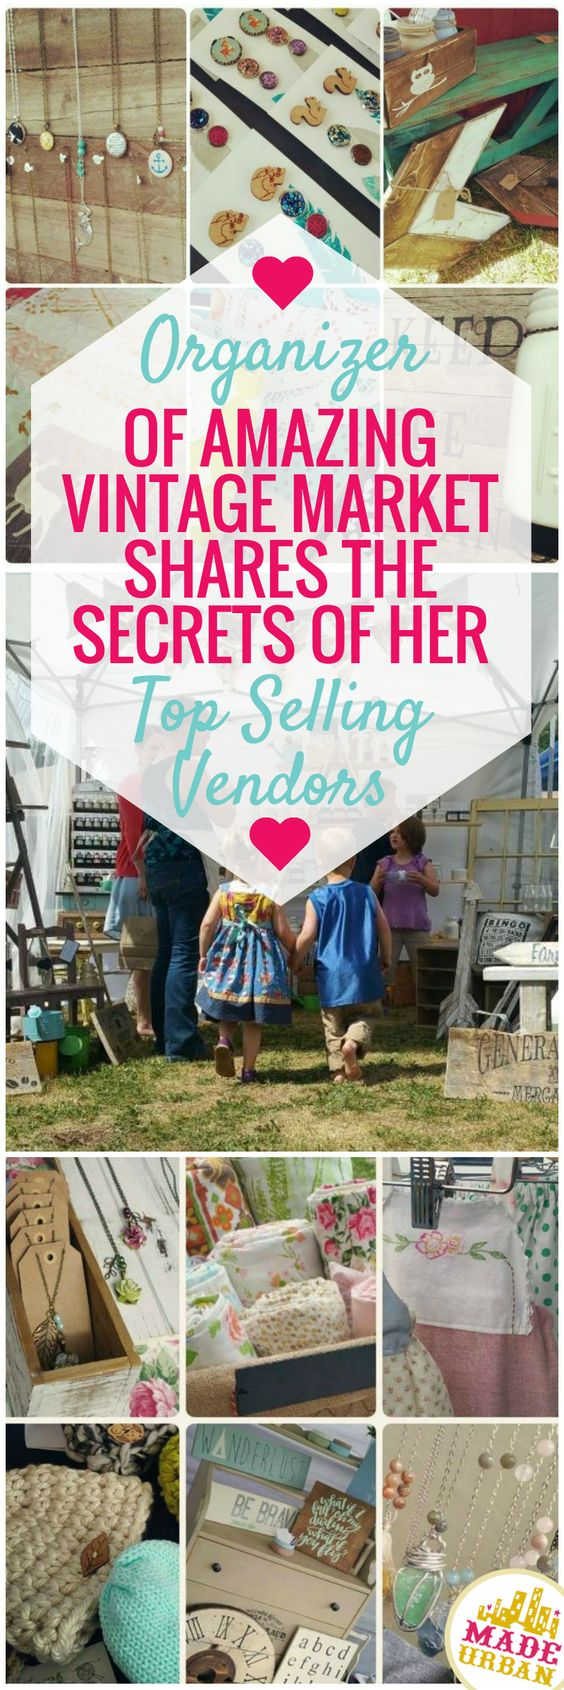 The event organizer of an annual summer vintage market, who has hosted hundreds of vendors, shares the best tips of her top selling vendors. Click to find out what they are!